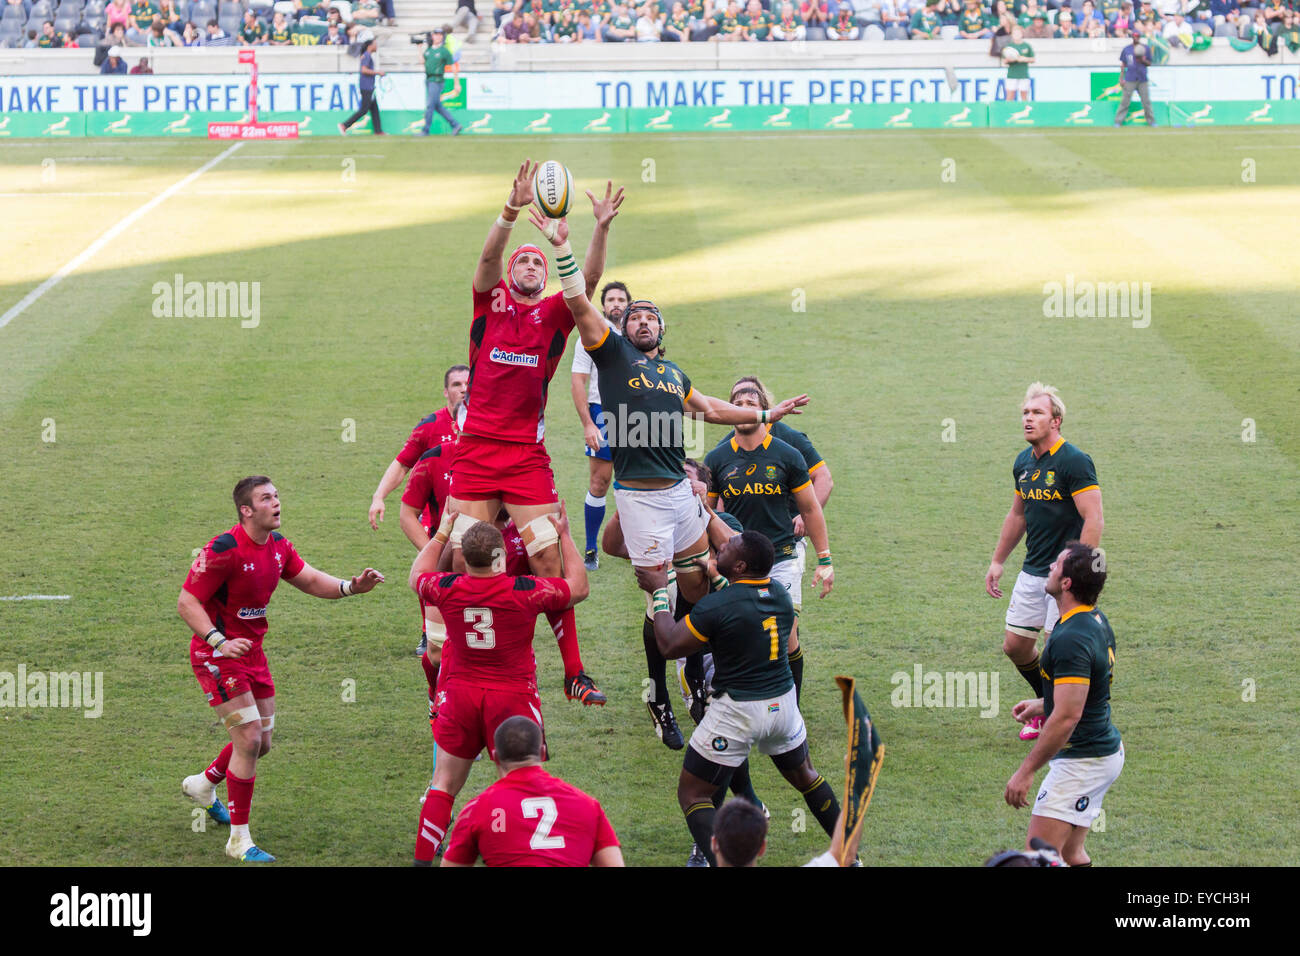 Victor Matfield supported by Tendai Mtawarira of South Africa stealing the lineout ball Wales during the 2nd test - Stock Image